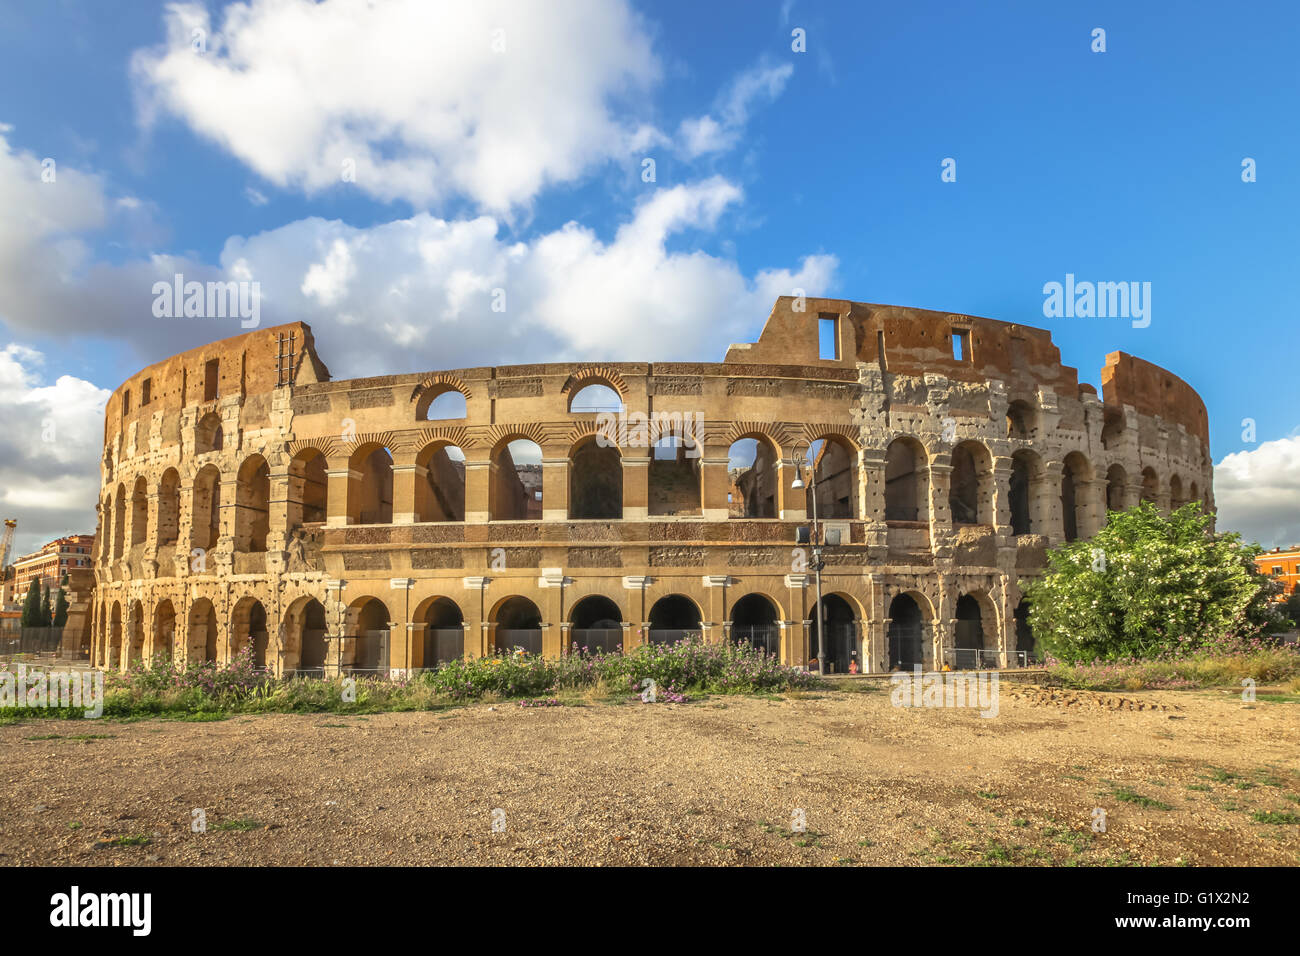 Colosseo Roma Italy - Stock Image